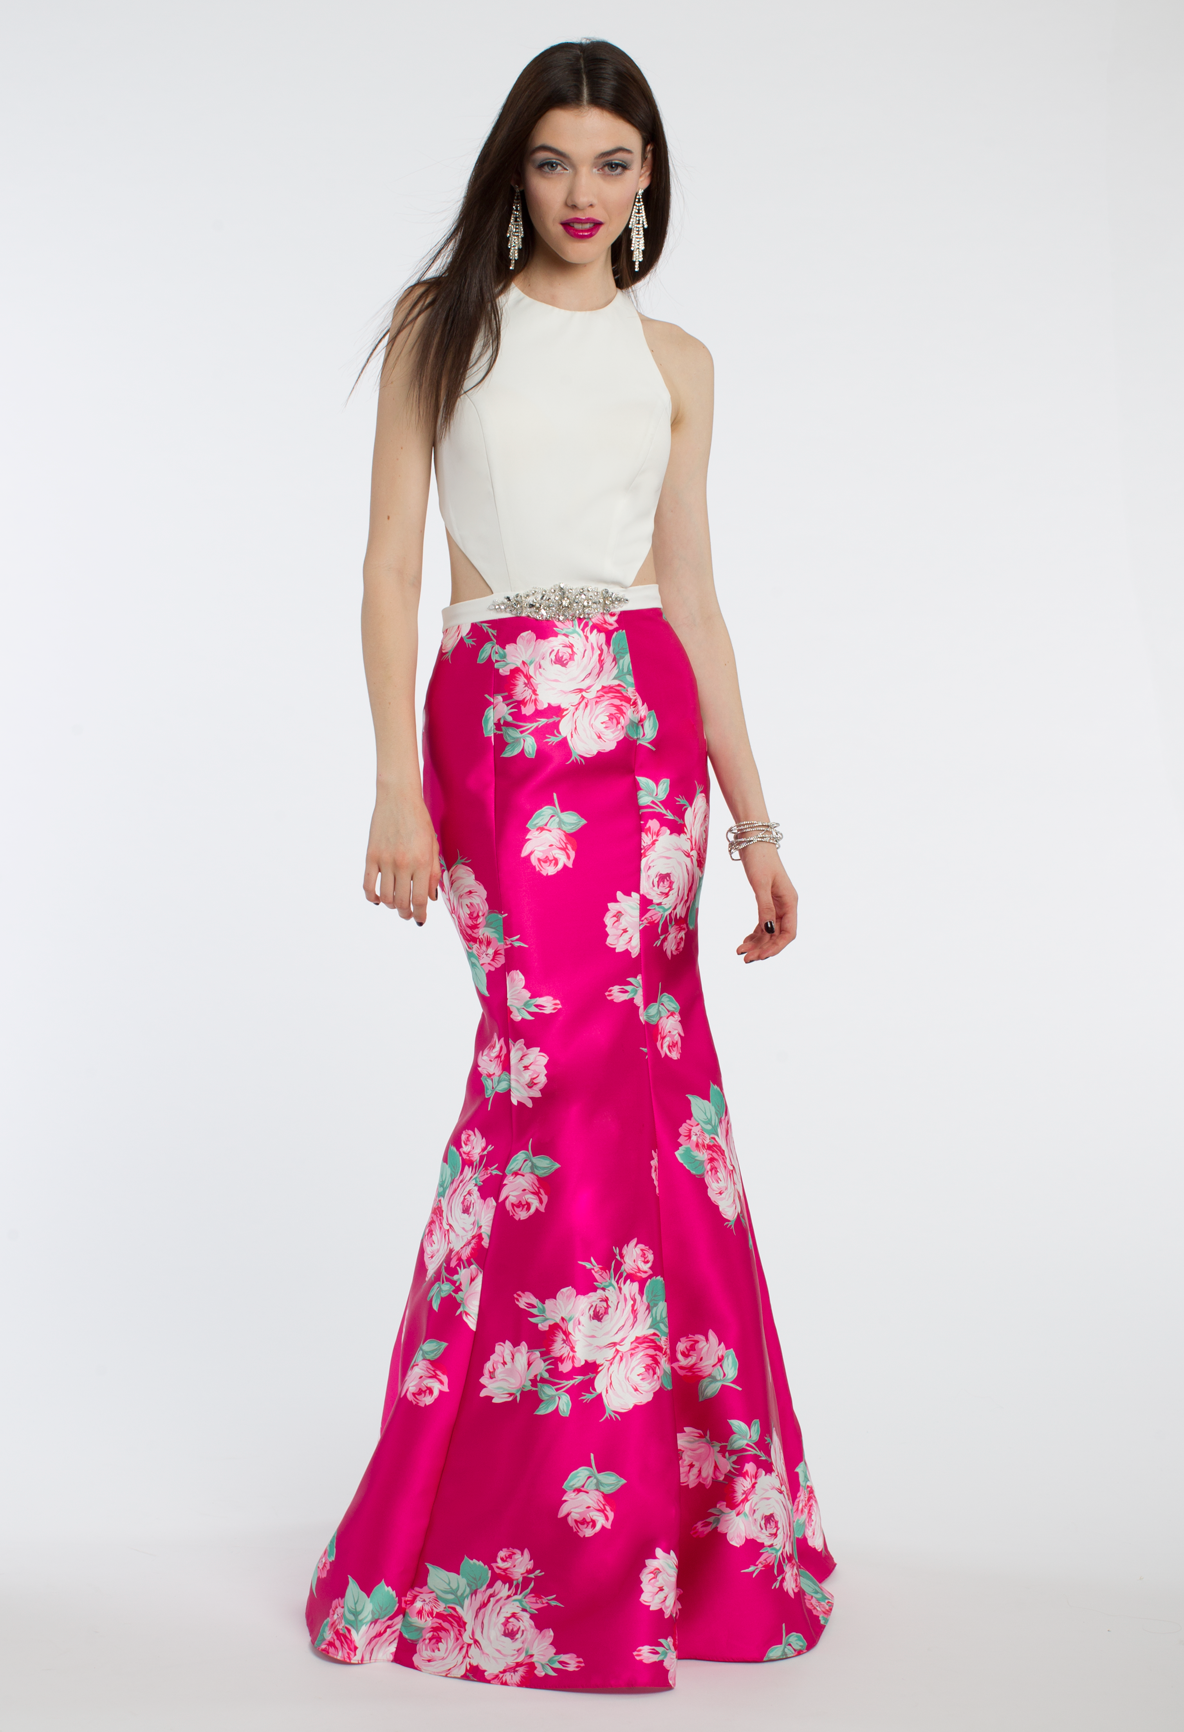 Prepare for a posh evening when you wear this vibrant long prom ...